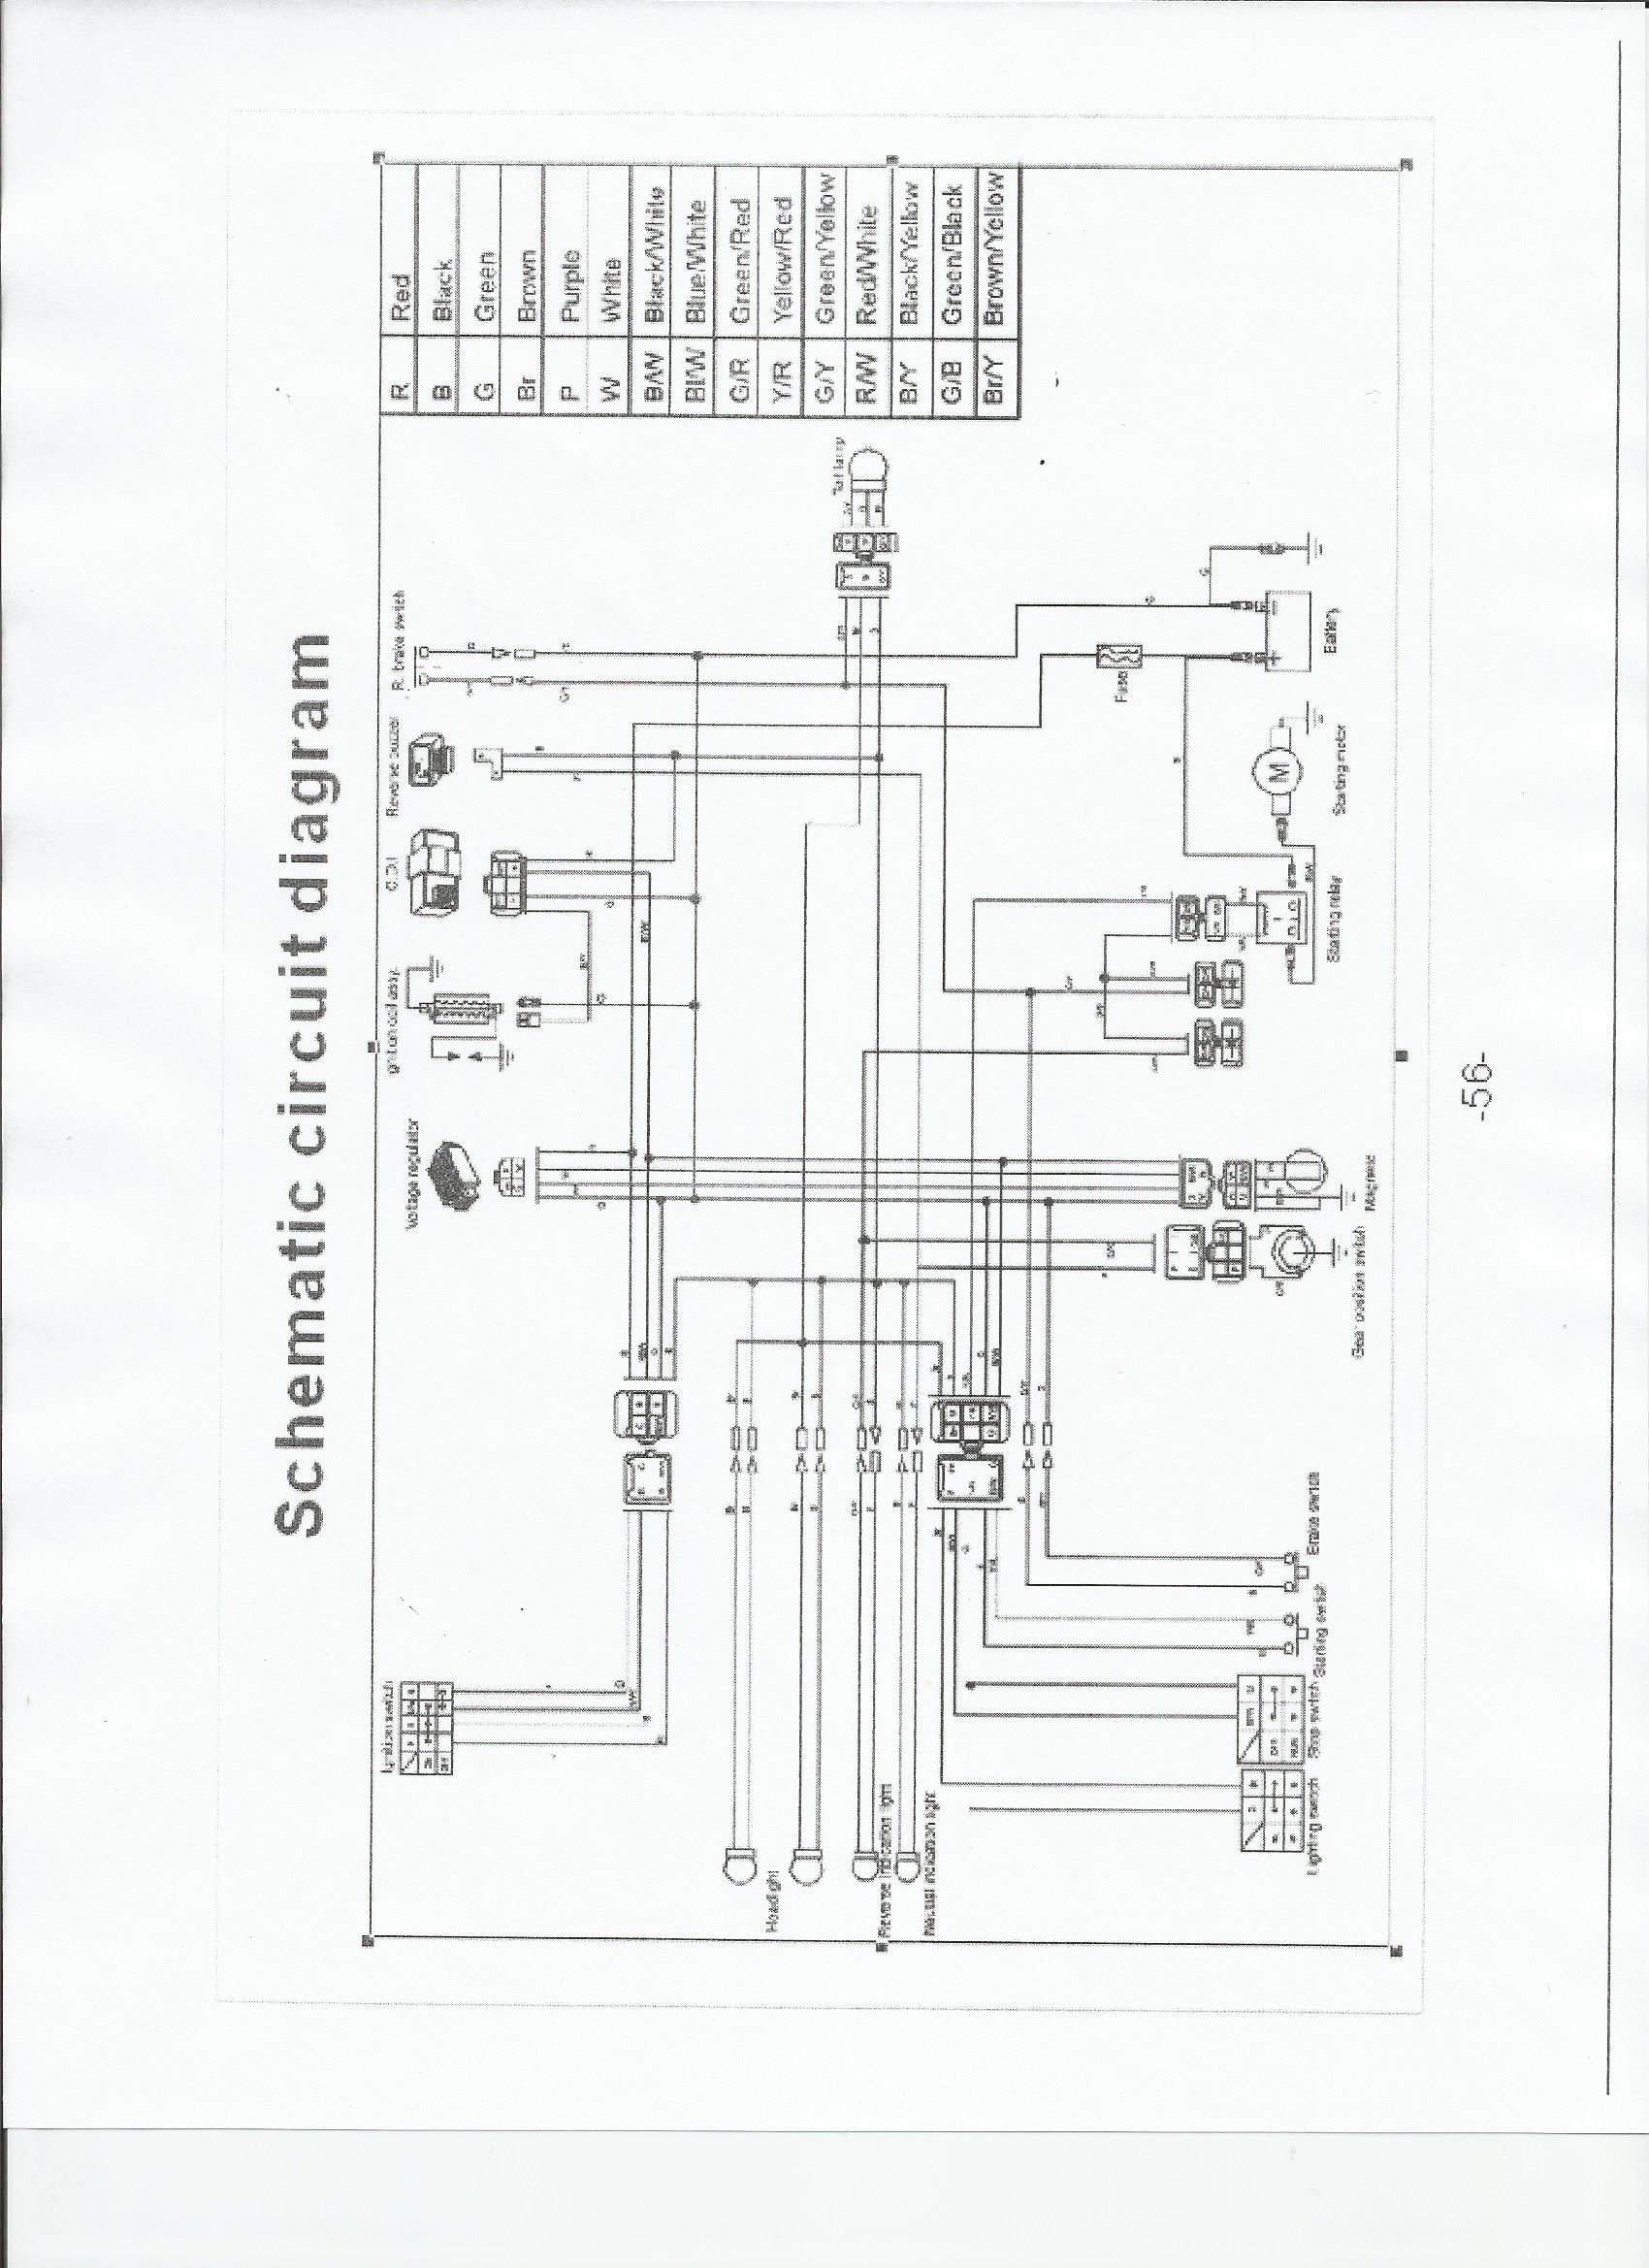 mini 50 atv wiring harness wiring diagrams rh boltsoft net Chinese ATV Wiring Diagrams Ata 110 Wiring Diagram